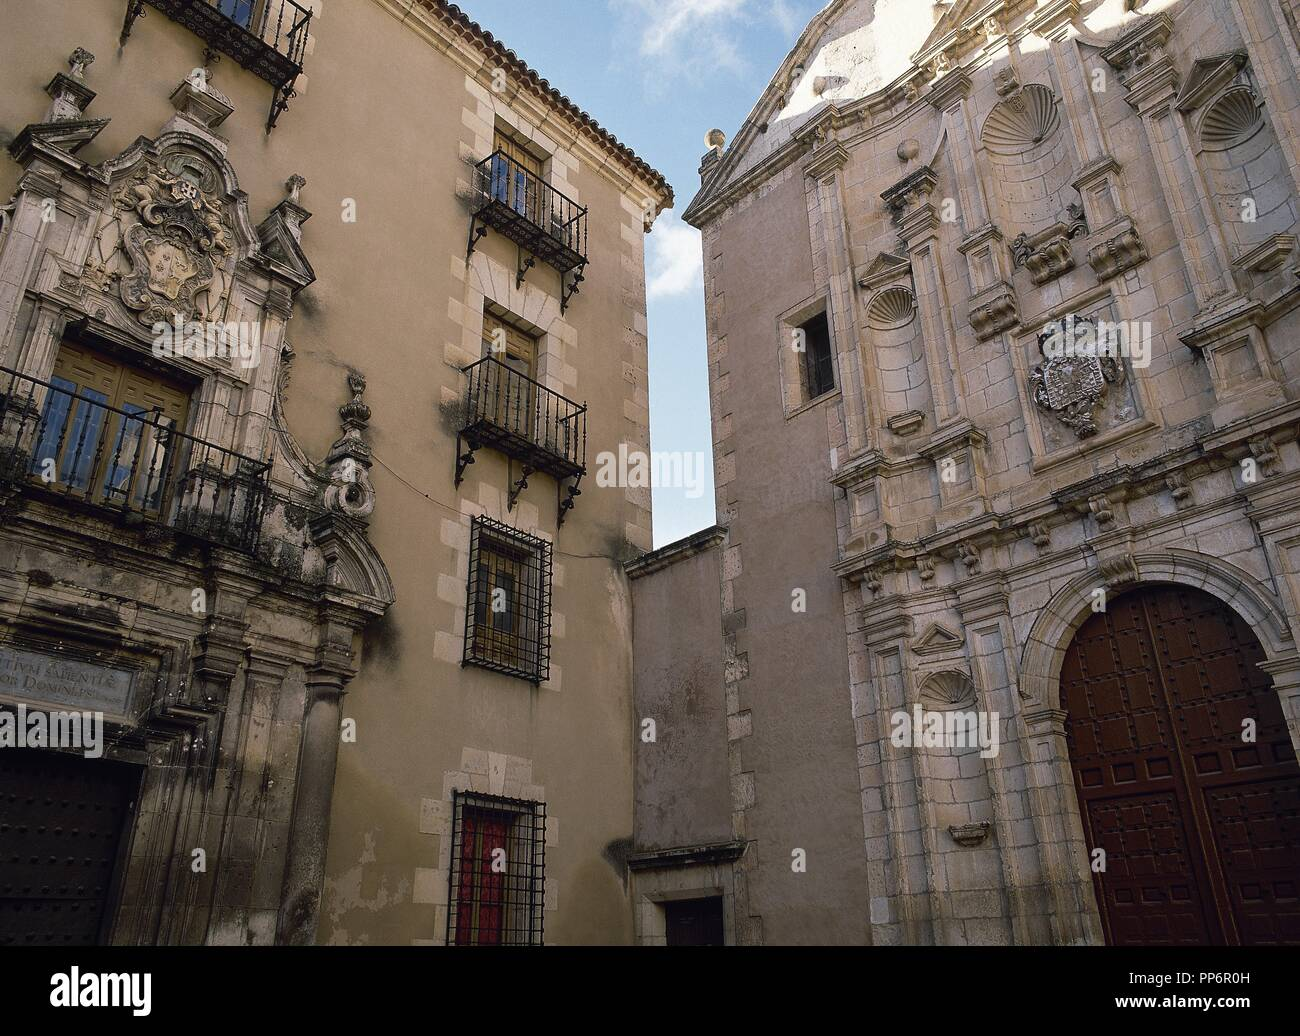 Spain. Cuenca. Conciliar Seminary of Saint Julian, 16th-18th centuries, and Convent of the Blessed Virgin Mary of Mercy, 18th century. Facade. Merced Square. Stock Photo